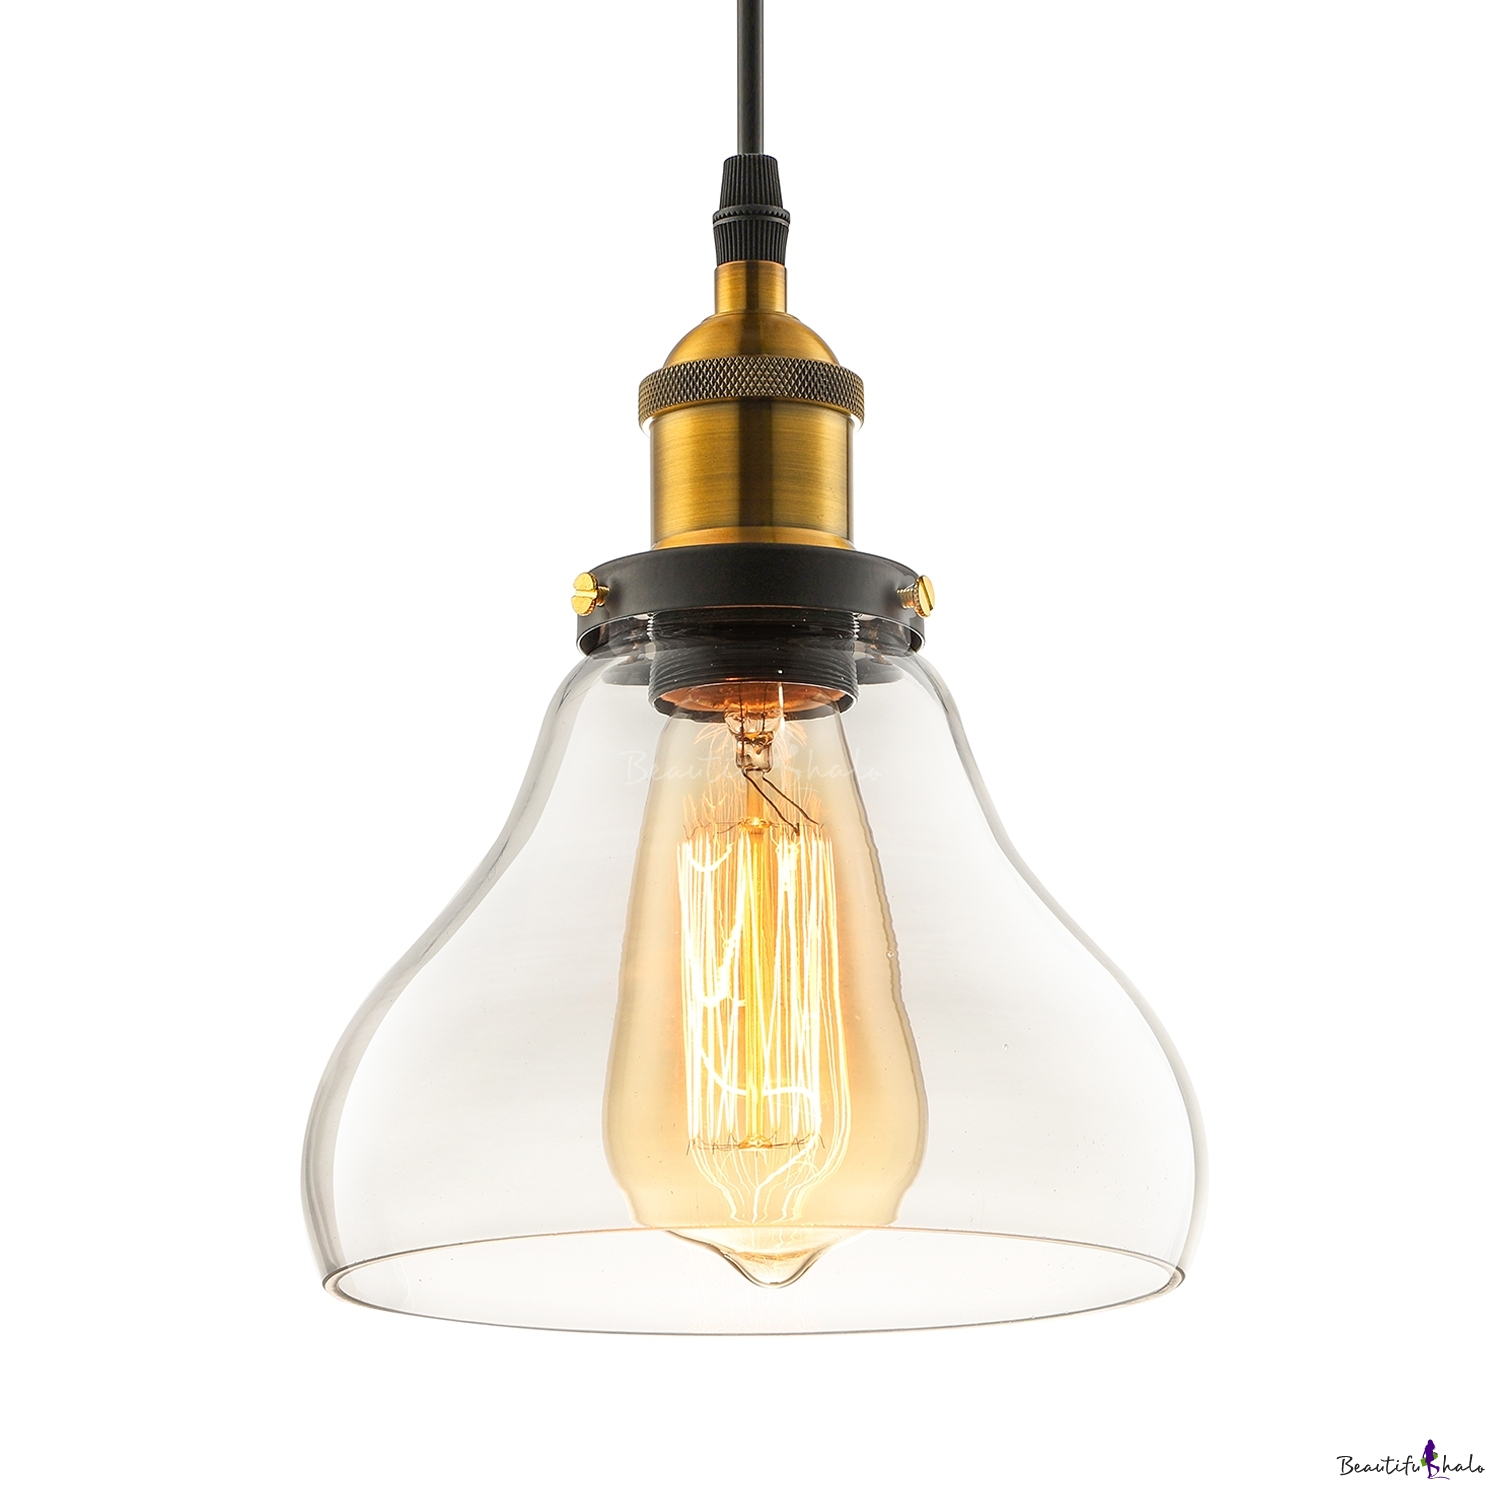 Fashion style pendant lights bronze industrial lighting vintage led mini pendant 1 light with clear glass bowl shade mozeypictures Image collections